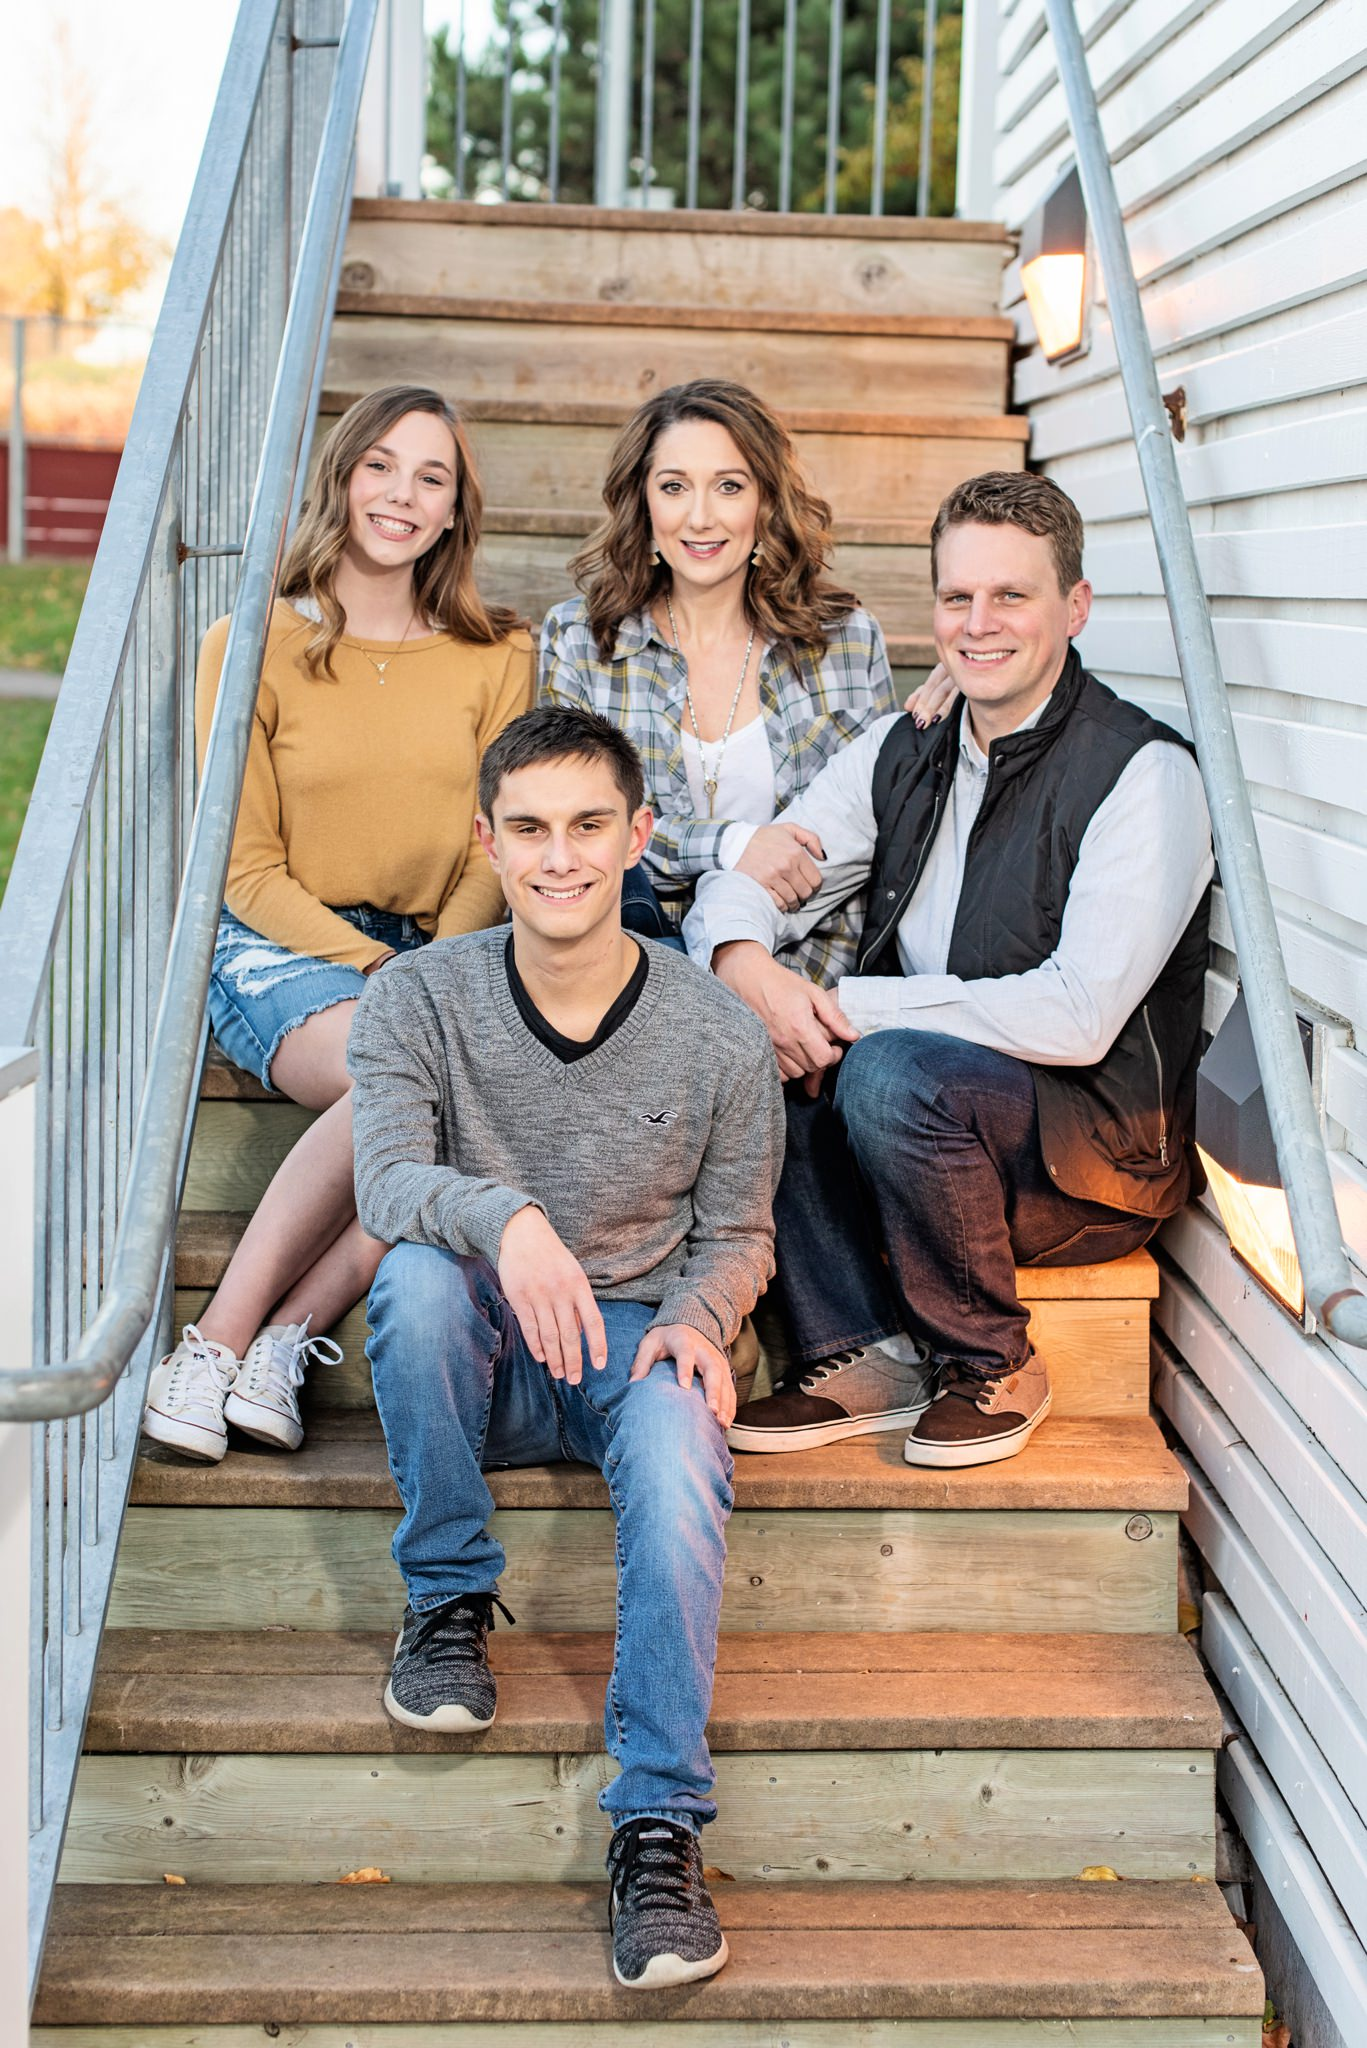 Wittwer-Family-Rotella-Photography-2018-31_WEB.jpg